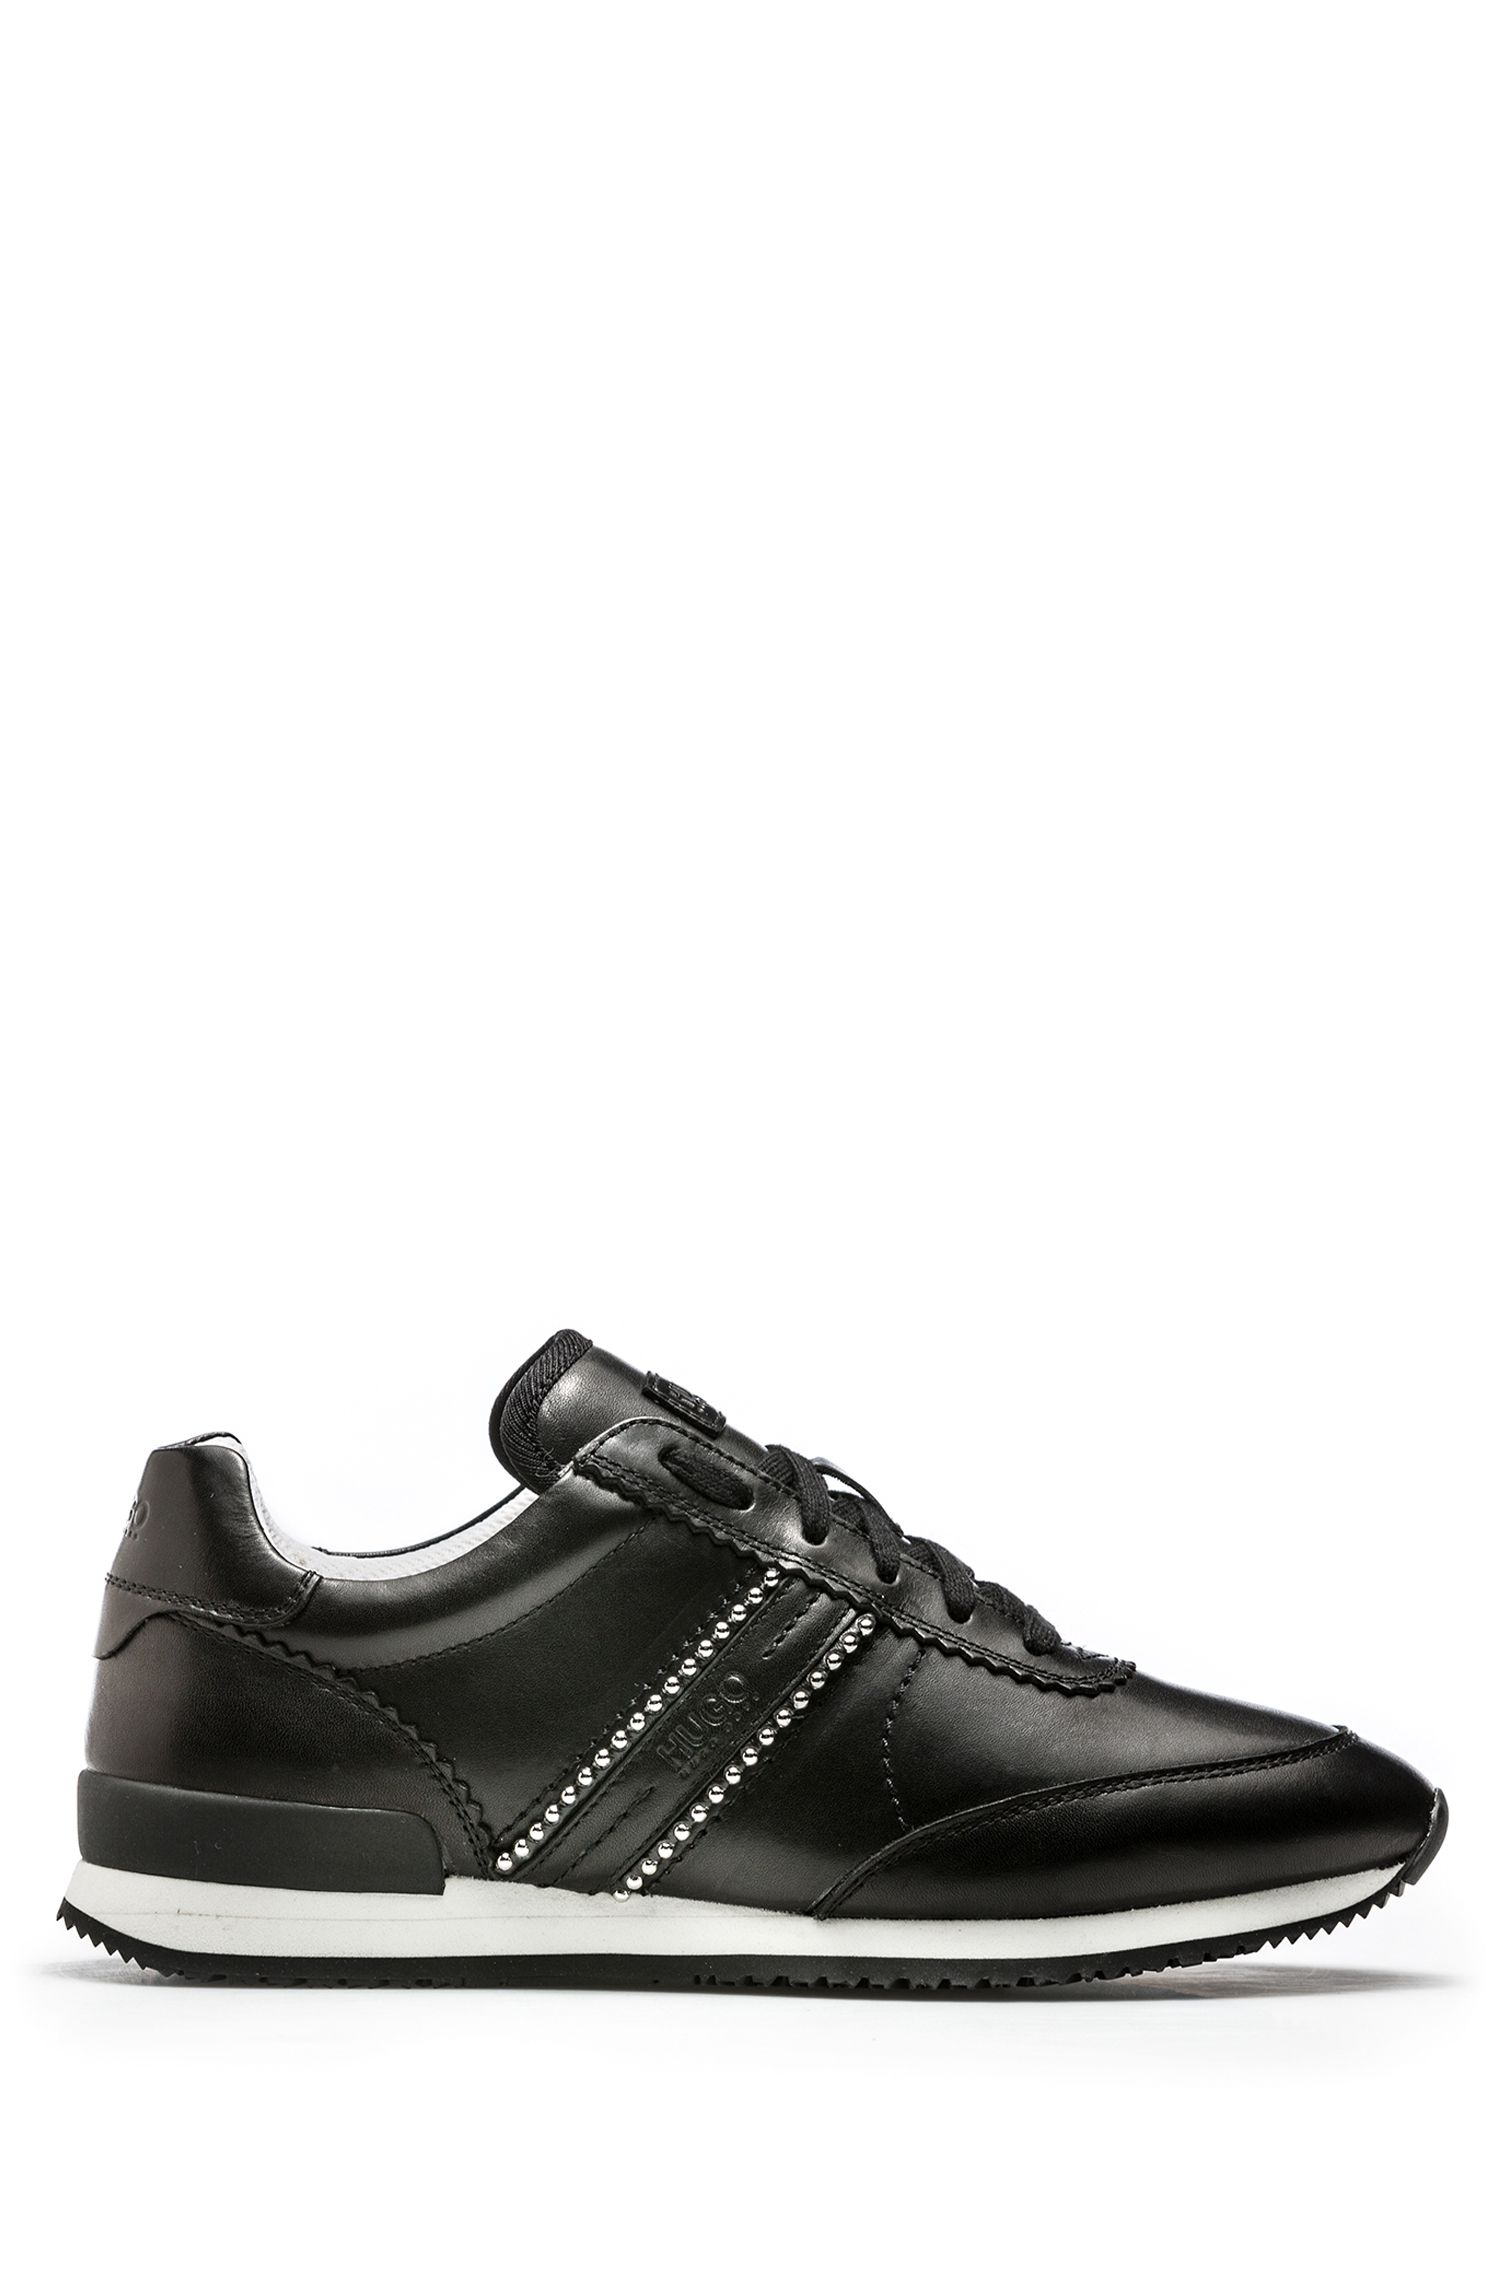 Low-top leather sneakers with metal stud detailing, Black